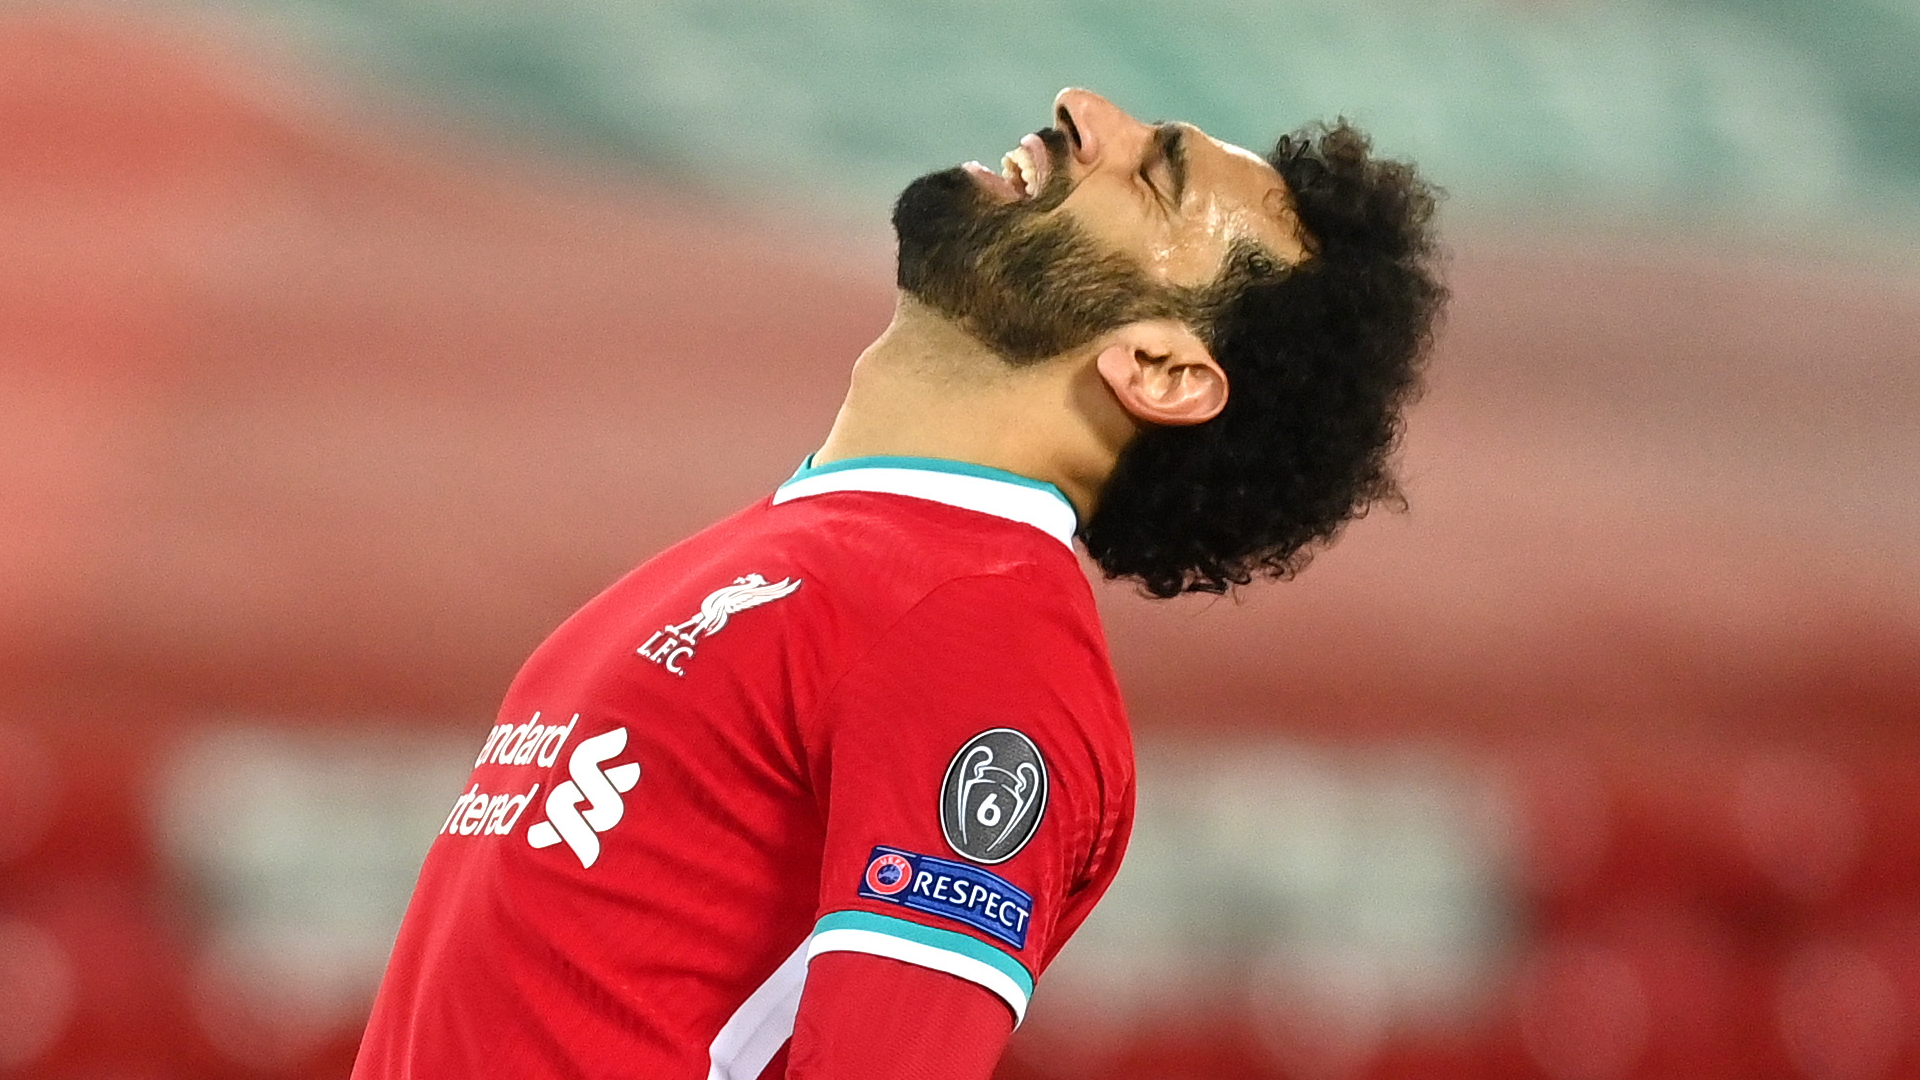 'Liverpool's Salah had strong desire to feature in Olympic Games' - Egypt coach Gharib